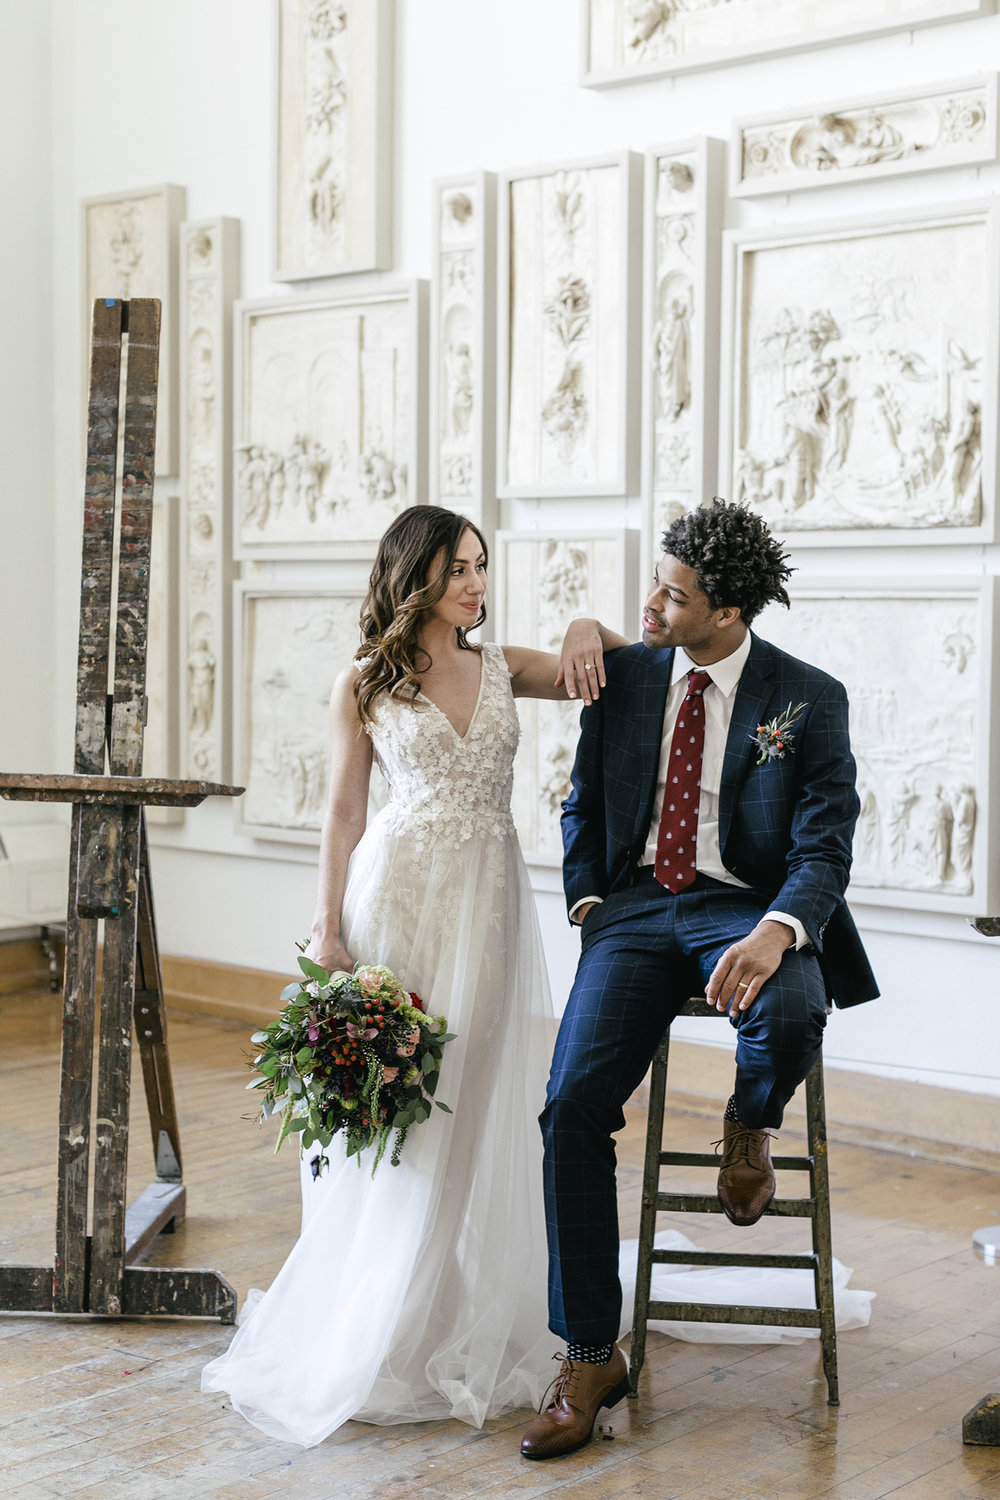 photography-wedding-weddings-natural-candid-pafa-pennsylvania academy-philadephia-philly-philadelphia wedding-mixed race-editorial-modern-fine-art-040.JPG